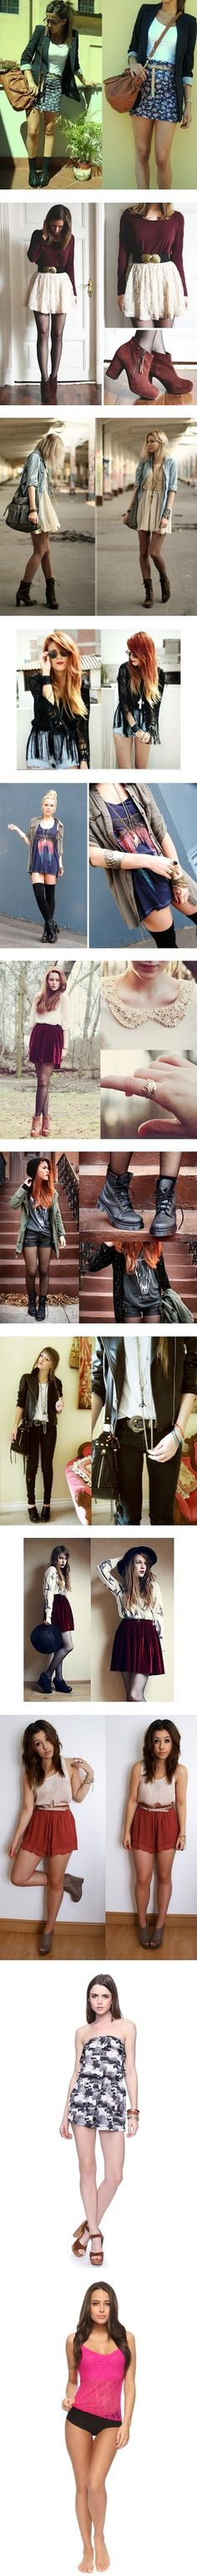 #Clothes #Cool #Style #Nice #Lindo #Ropa #Girl #Mujer #Chica #Young #Joven #tips #DIY #Look #Genial ♥